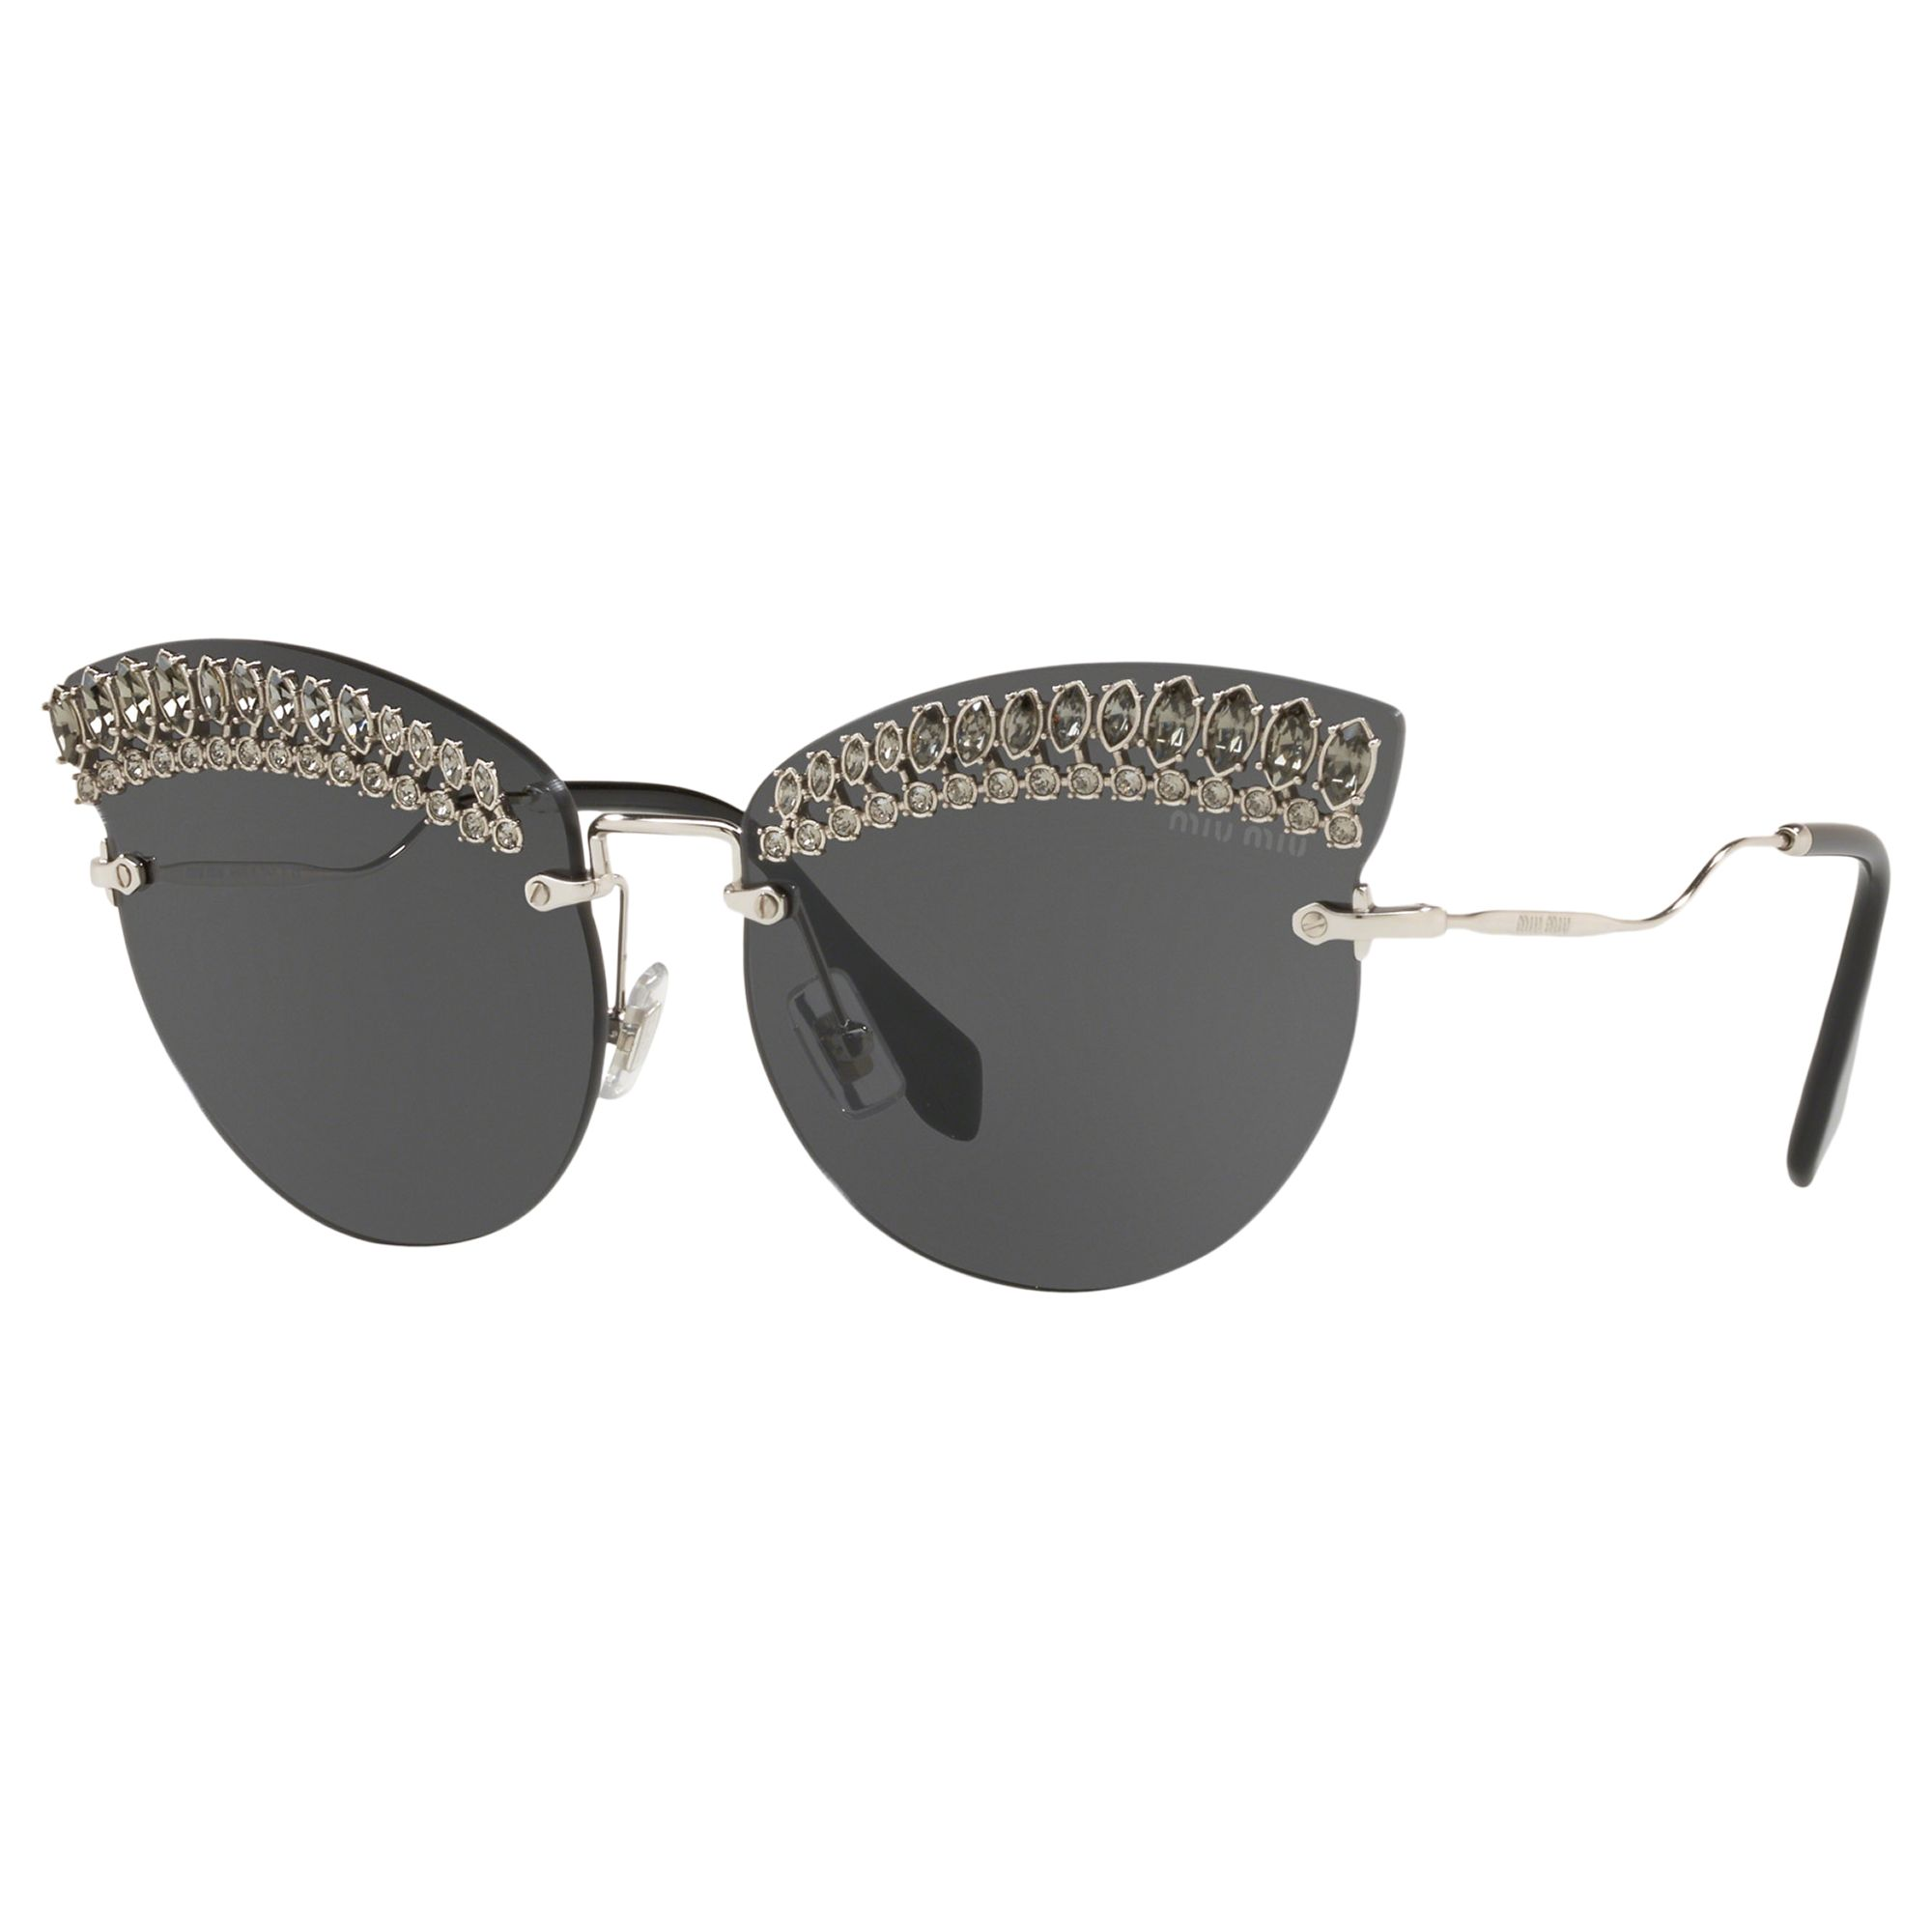 Miu Miu Miu Miu MU 58TS Women's Crystal Embellished Cat's Eye Sunglasses